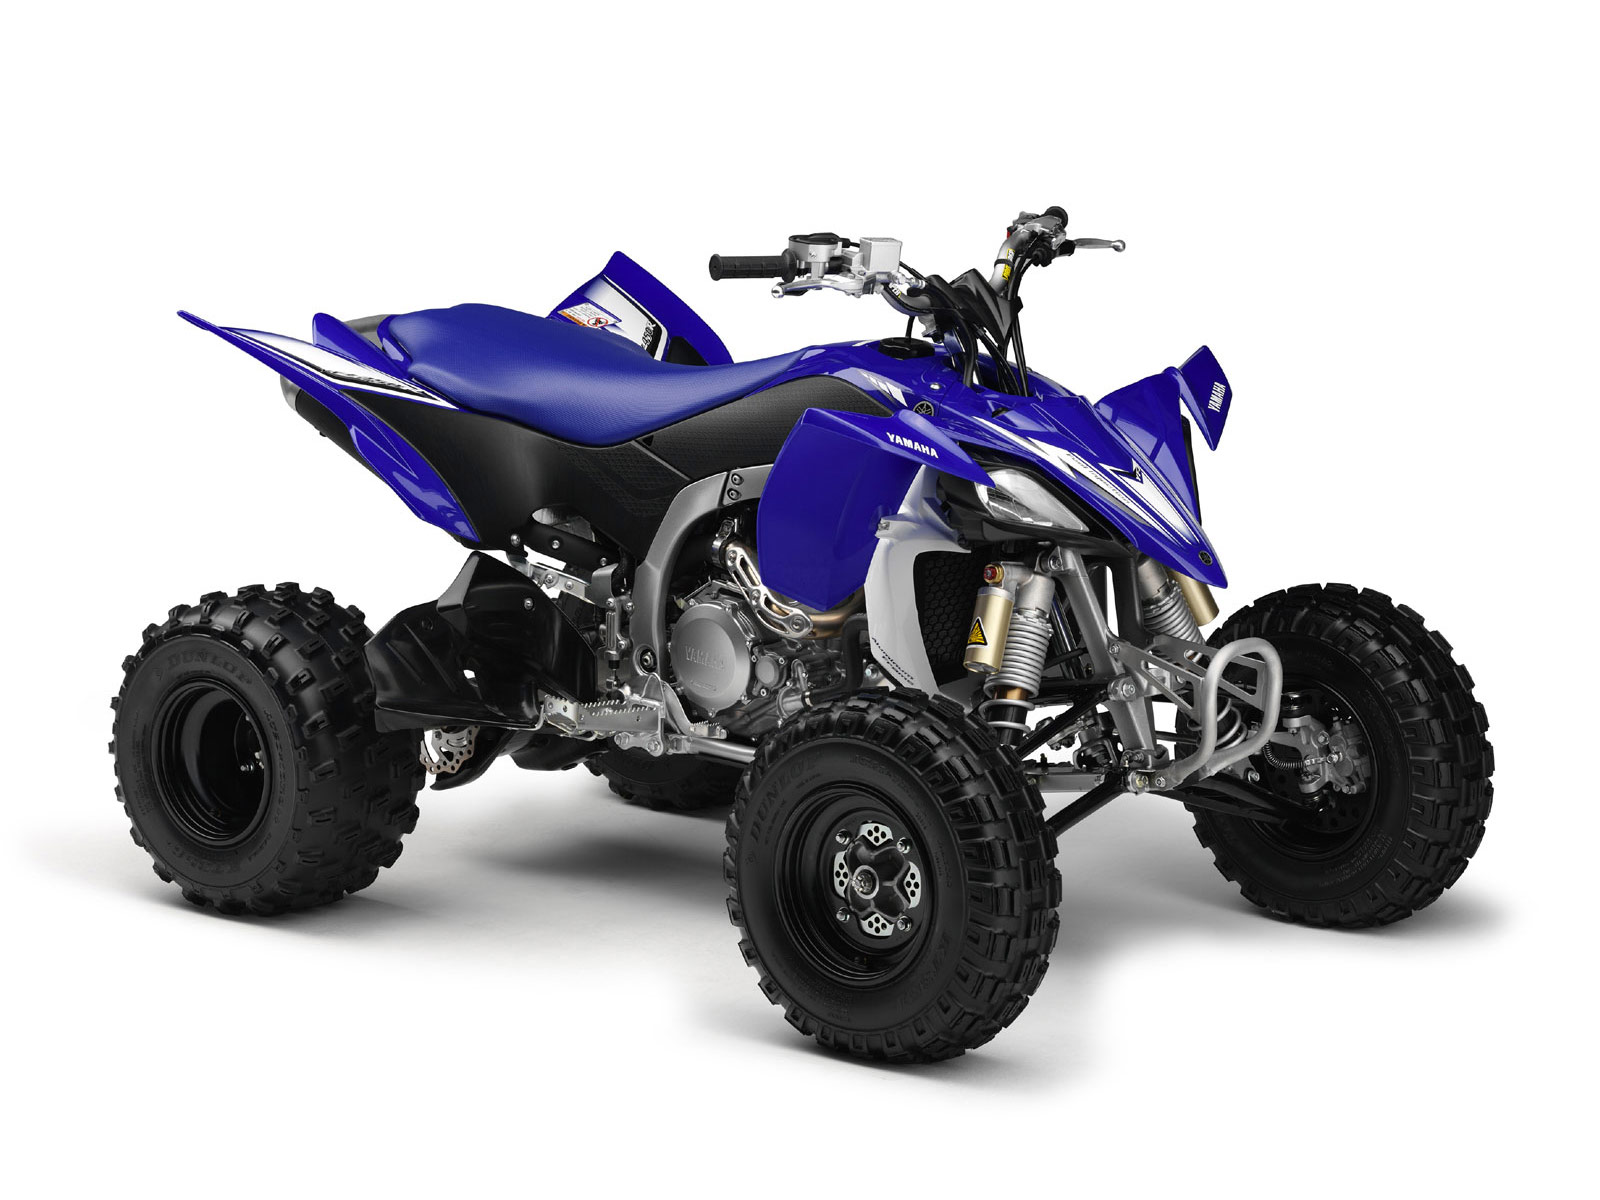 2007 Suzuki Ltr 450 Wiring Diagram 2003 Pontiac Grand Am 2009 Yamaha Yfz450r Atv Pictures Accident Lawyers Info Features And Specifiacations